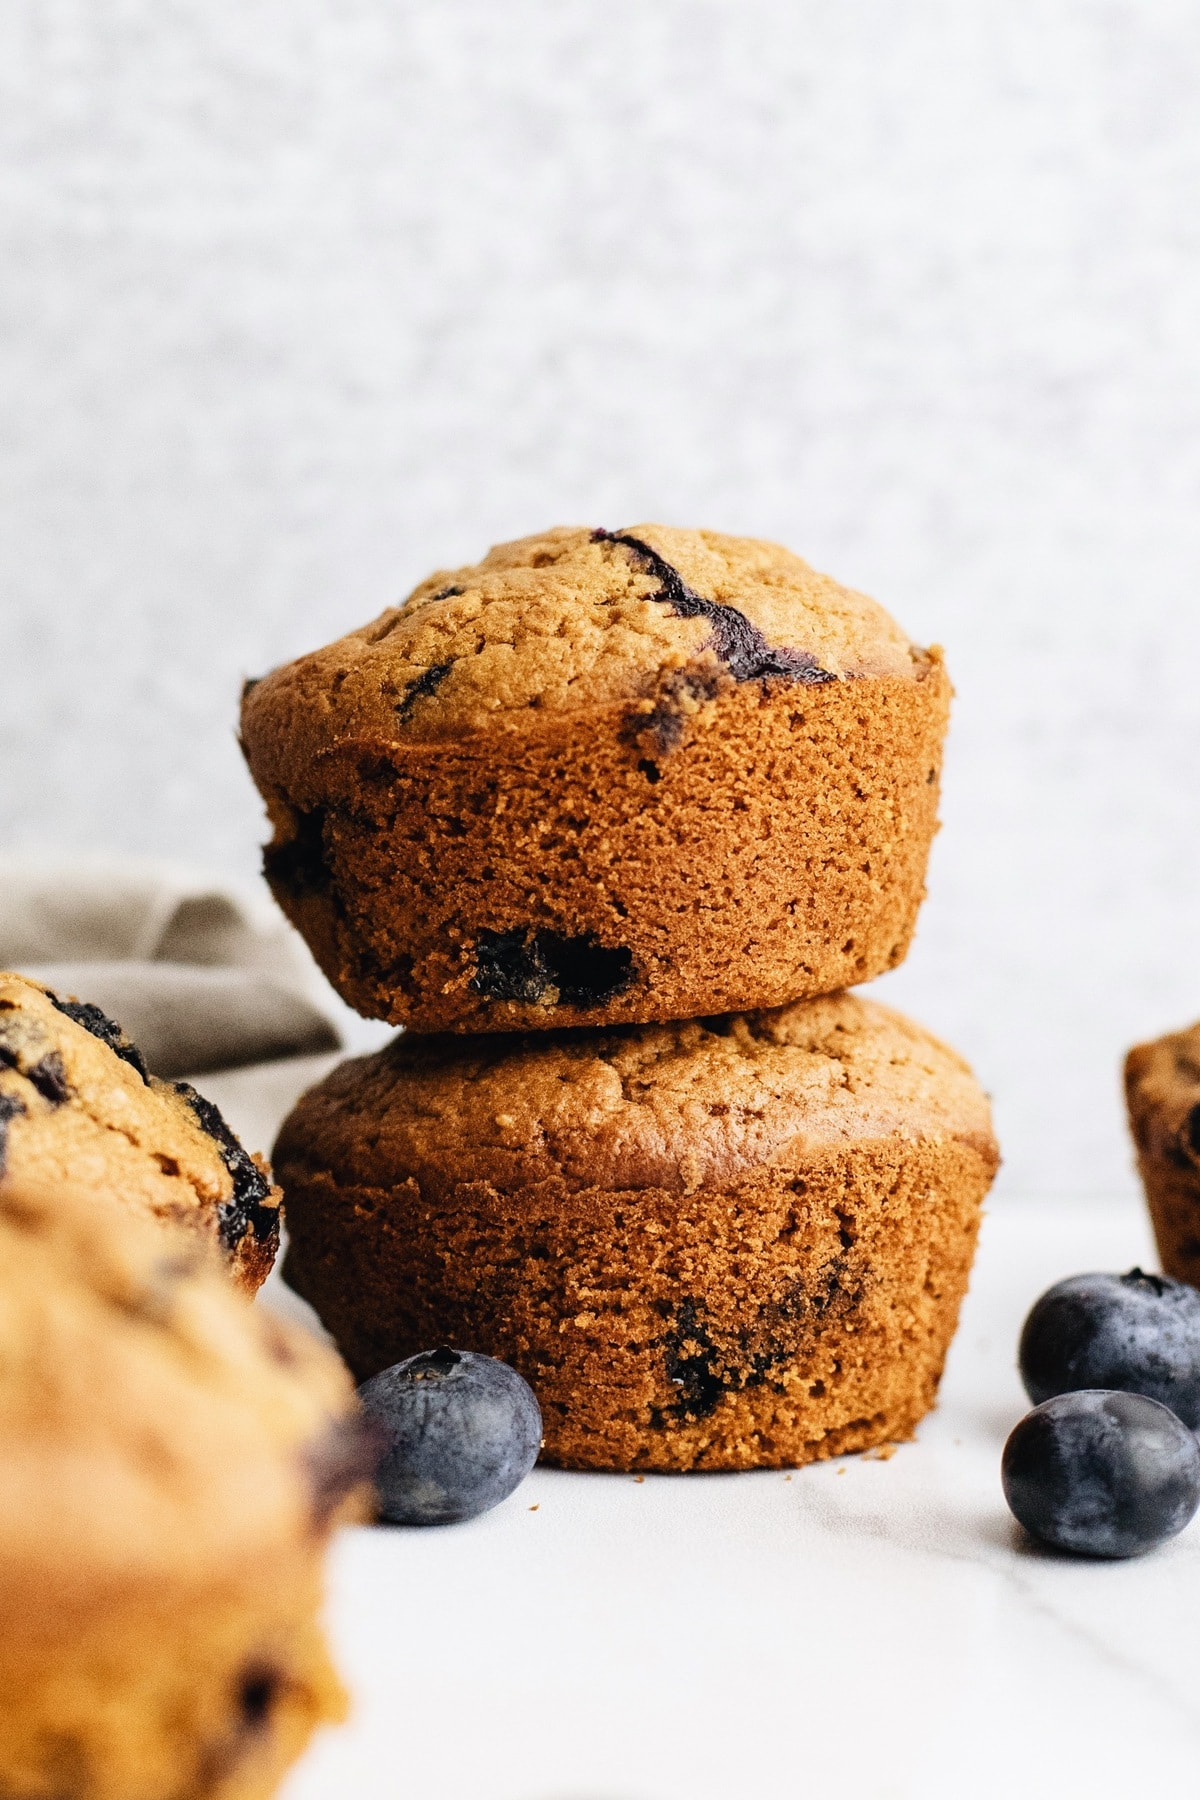 two muffins stacked on top of each other with blueberries scattered around.